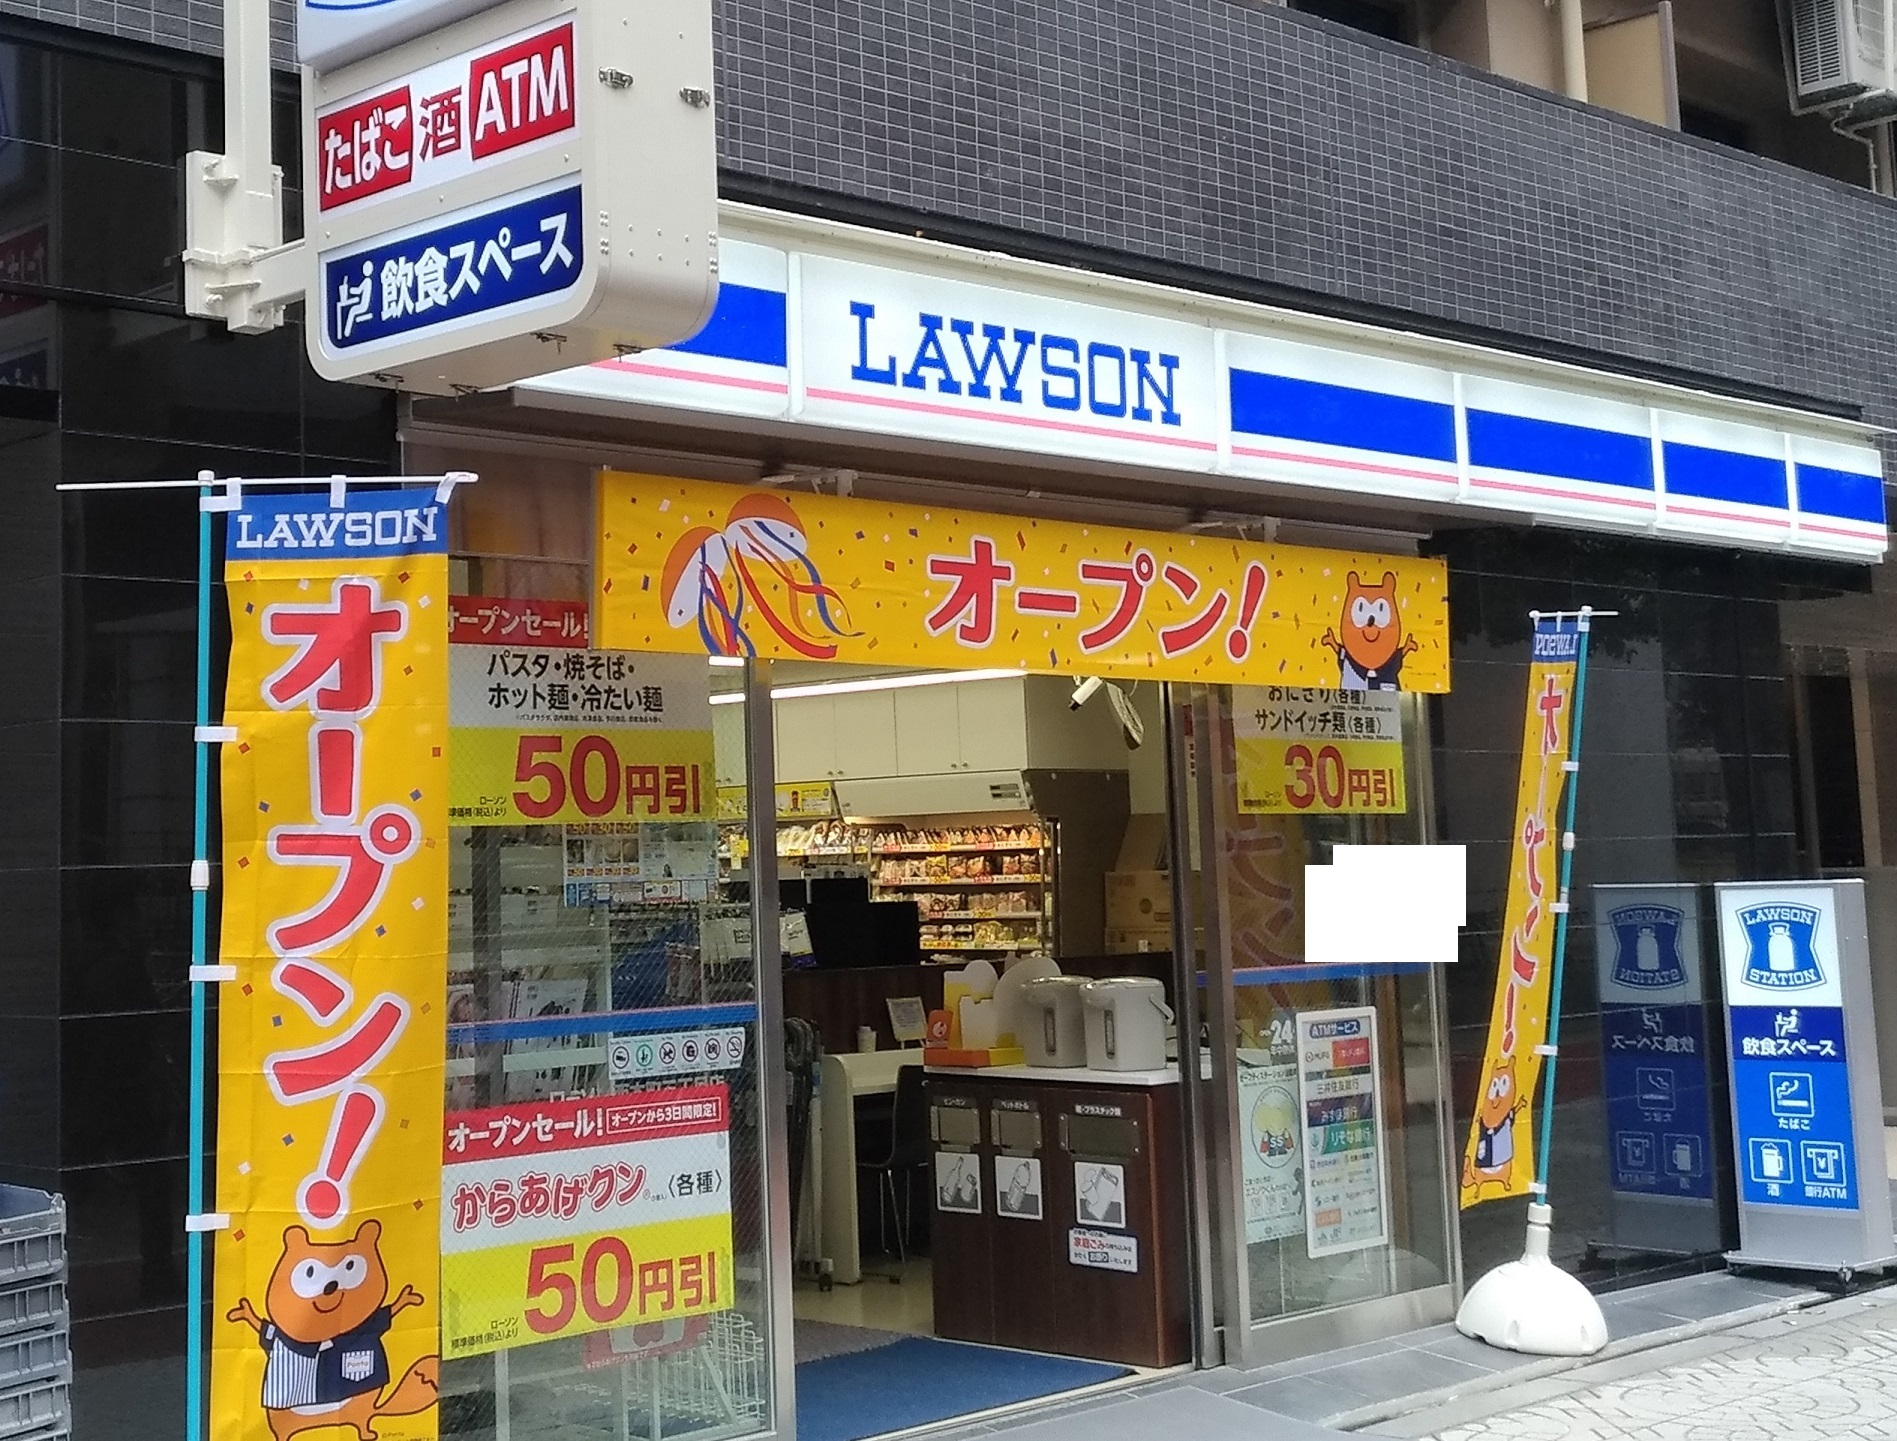 osaka_eat_in_lawson_1.jpg